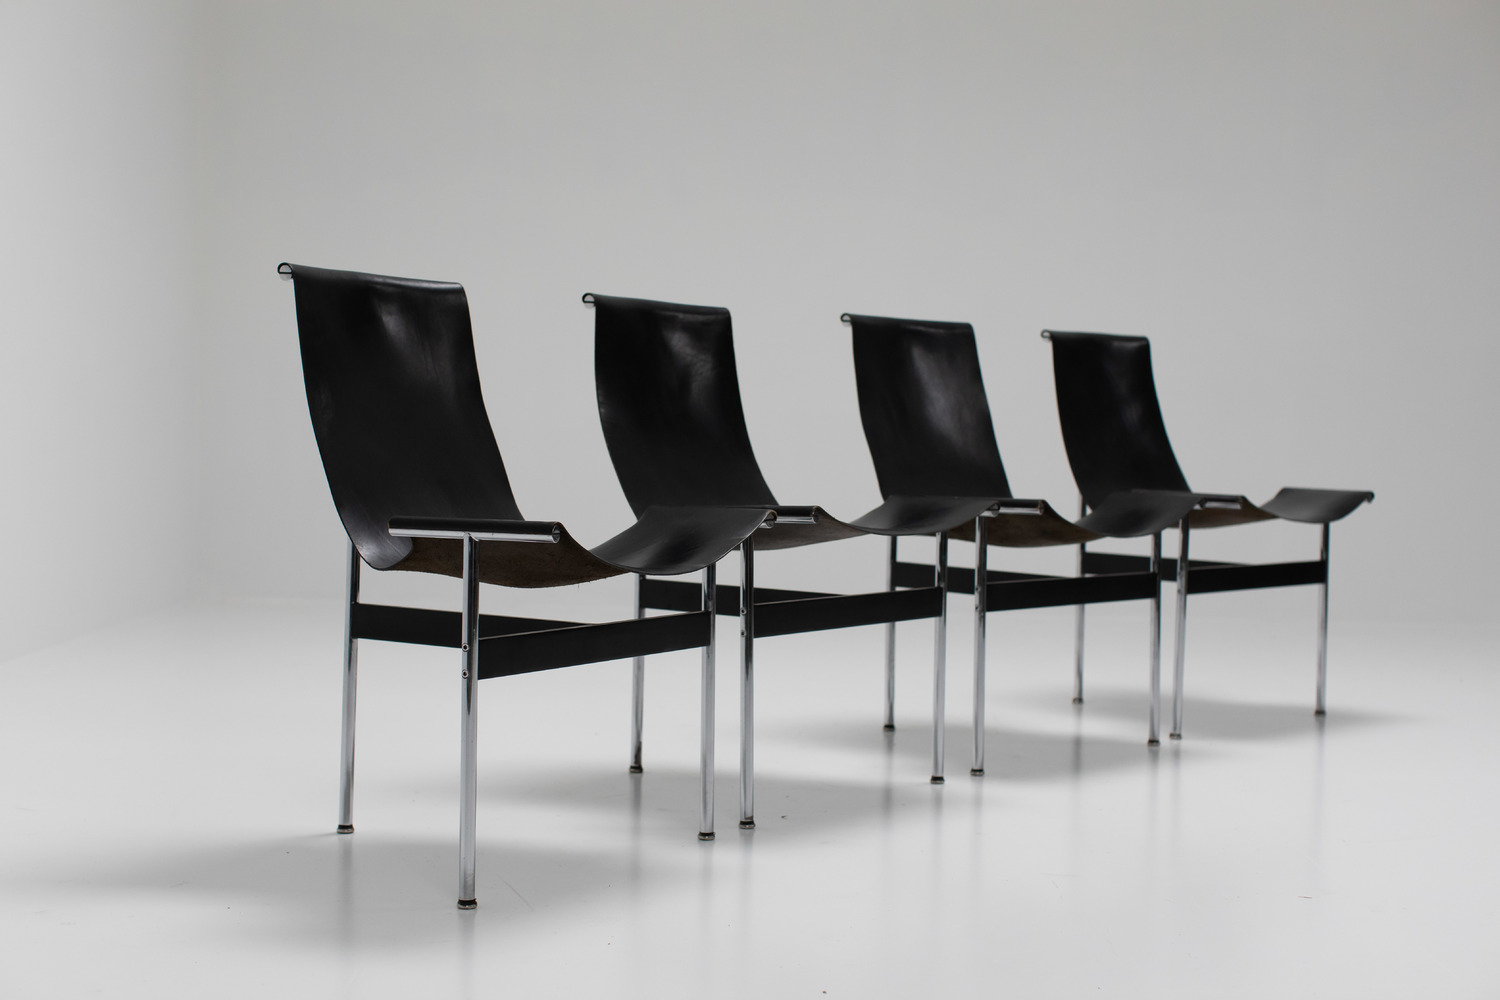 Set of 4 T-chairs by Katavolos and Laverne